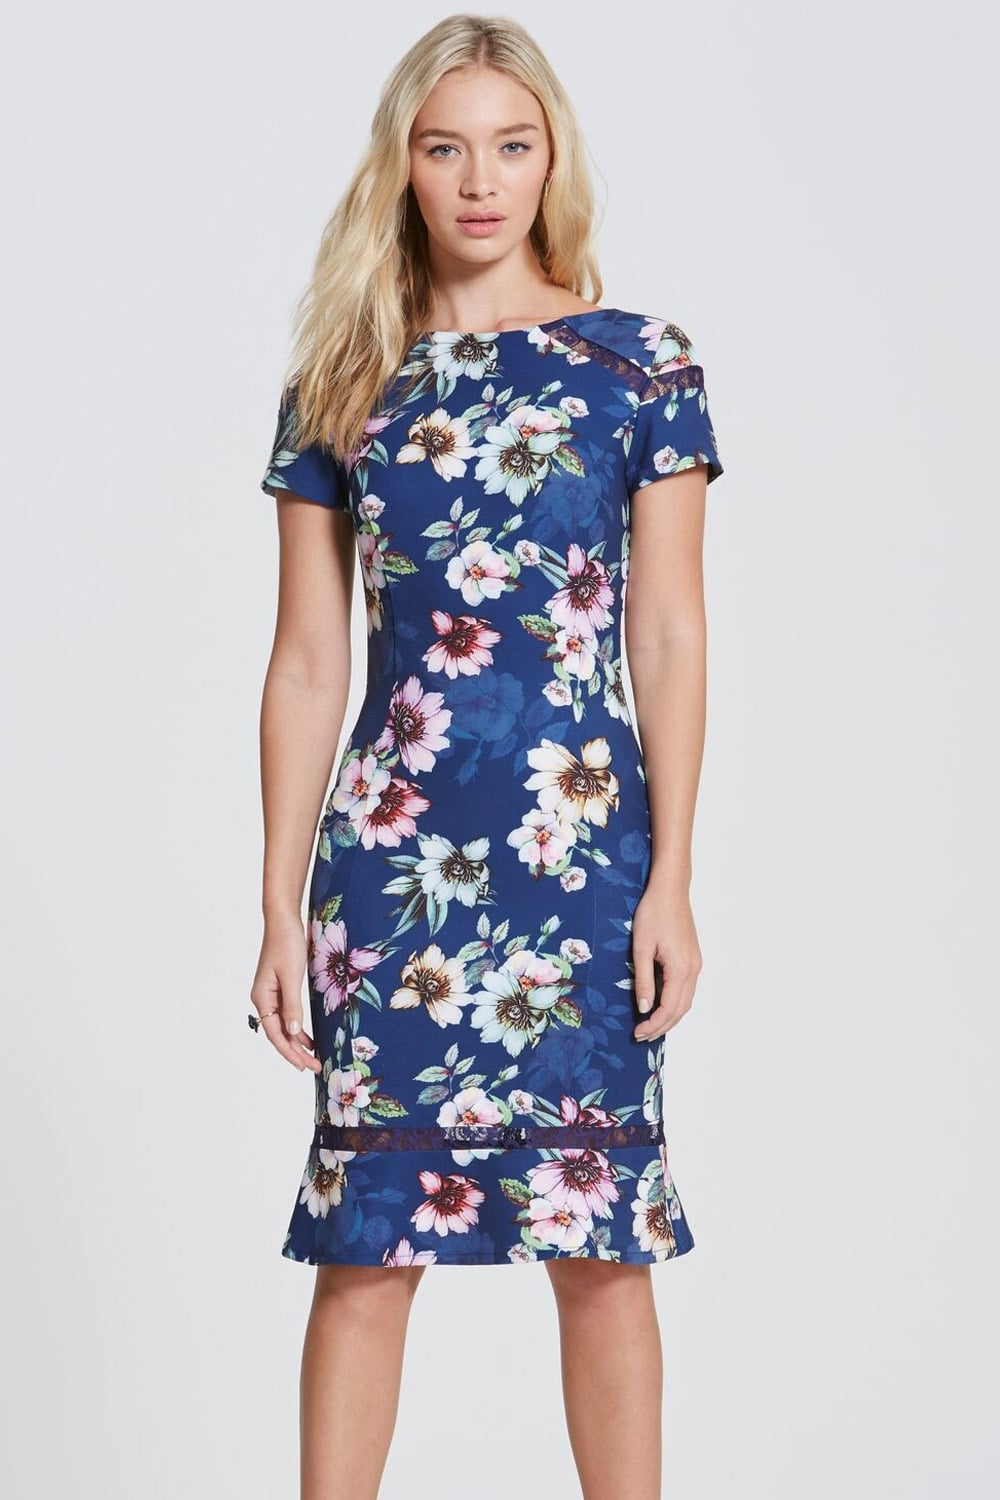 Buy the latest floral peplum dress cheap shop fashion style with free shipping, and check out our daily updated new arrival floral peplum dress at trueufilv3f.ga